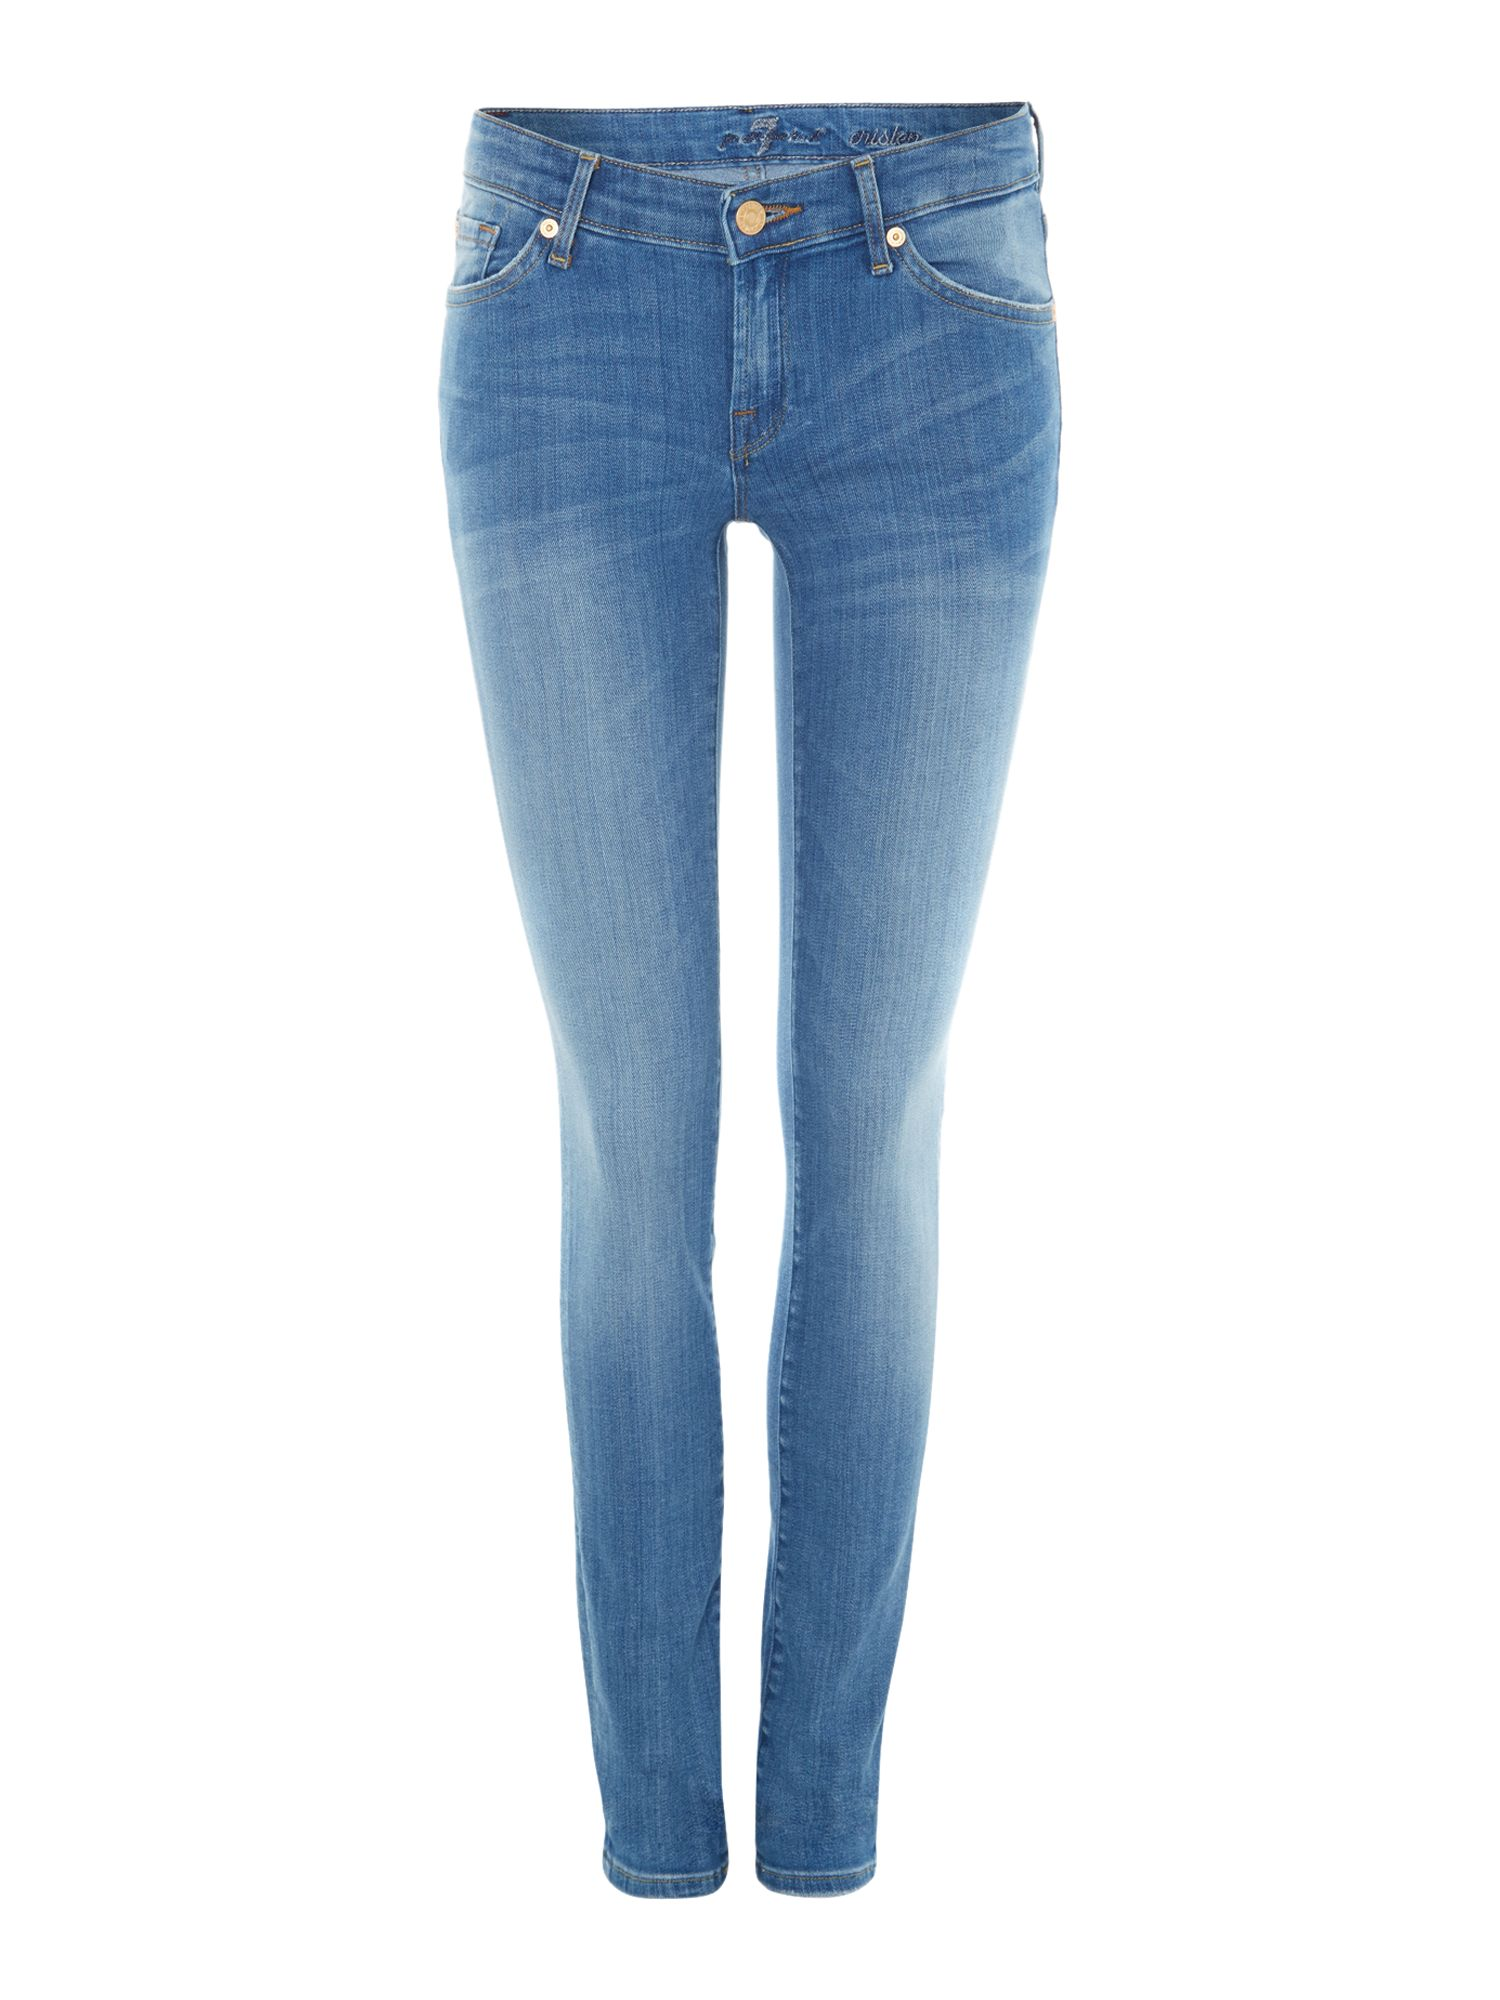 Cristen skinny jeans in Indigo Summer Dream